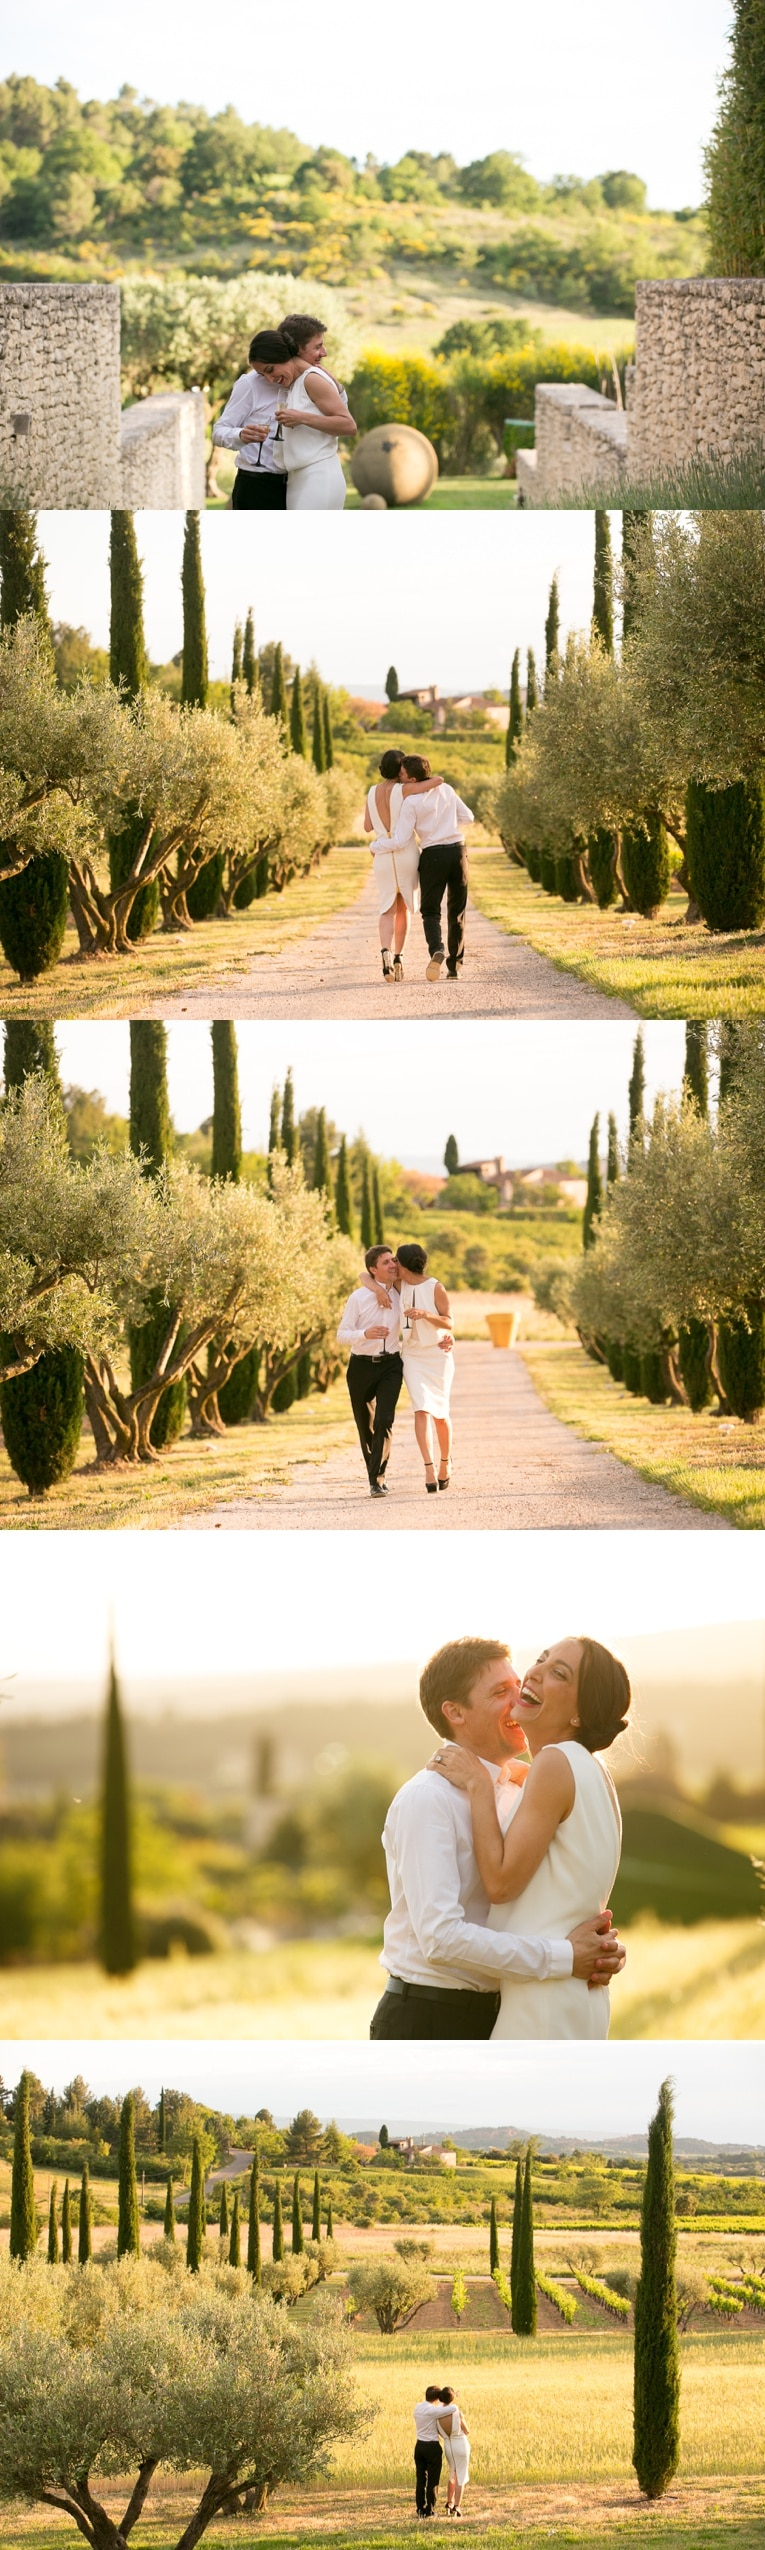 wedding-domaine-des-andeols-provence-7